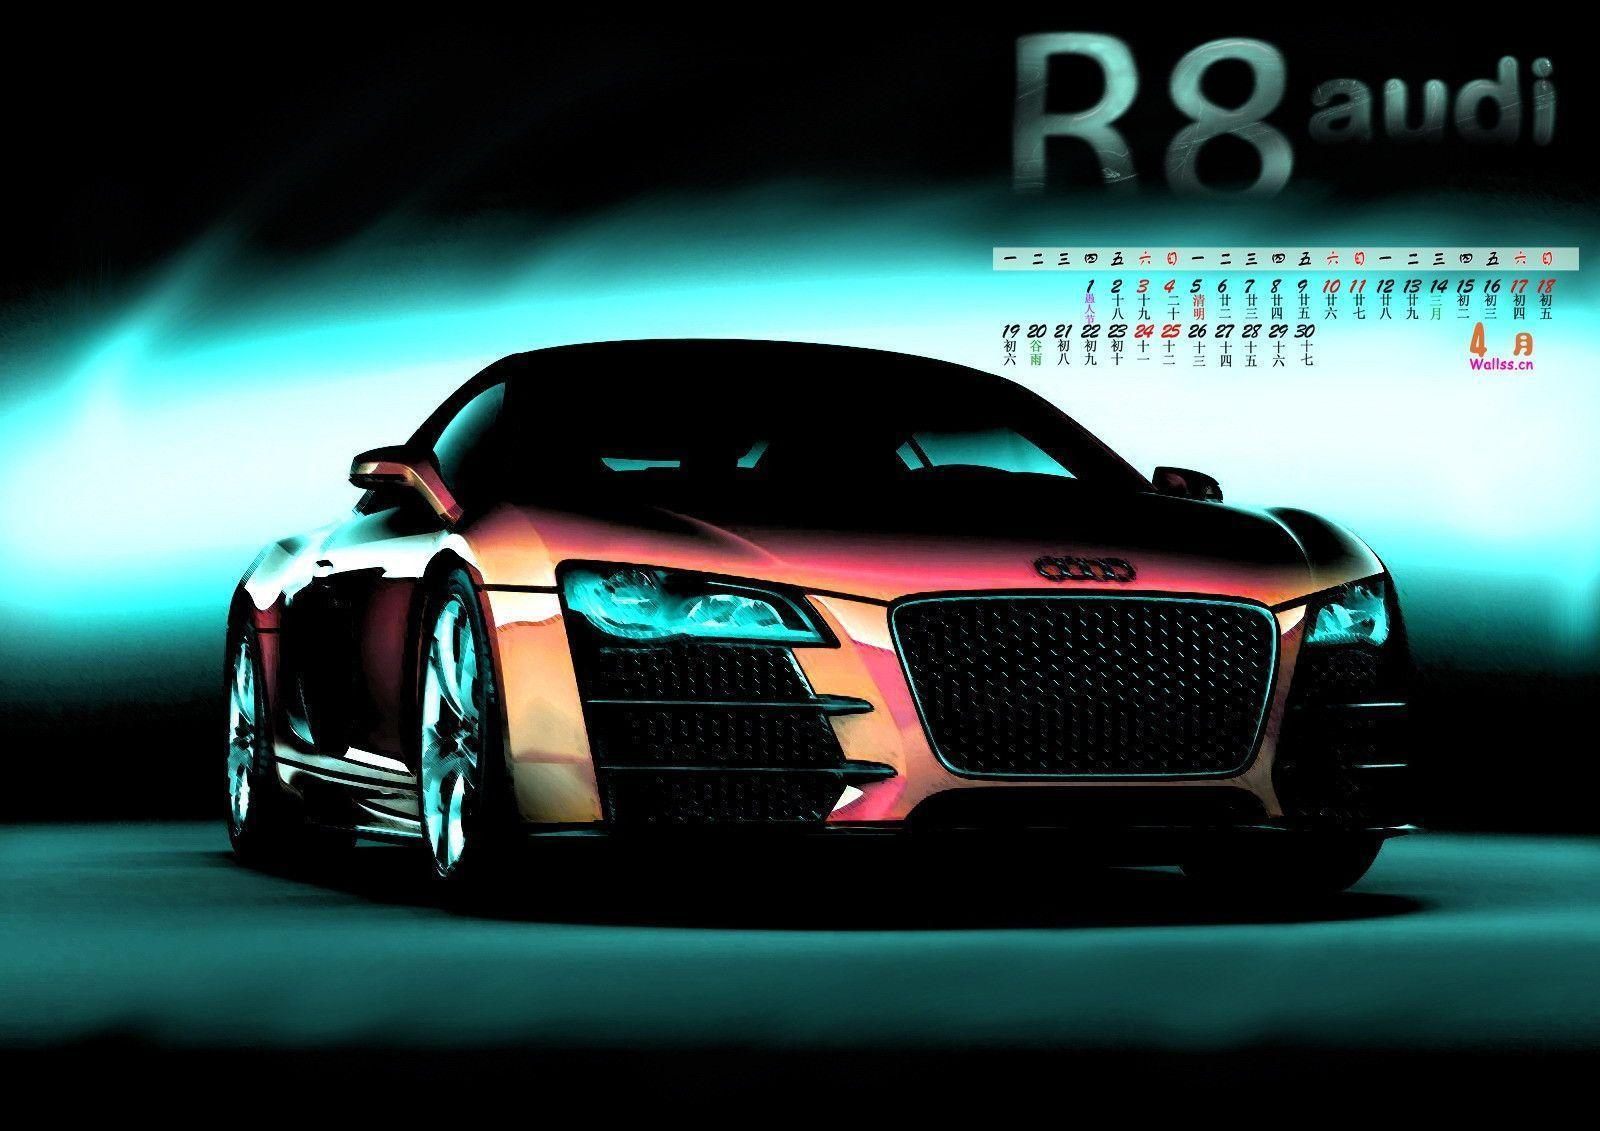 Cool Sport Cars Wallpaper Hq Images 12 HD Wallpapers | lzamgs.